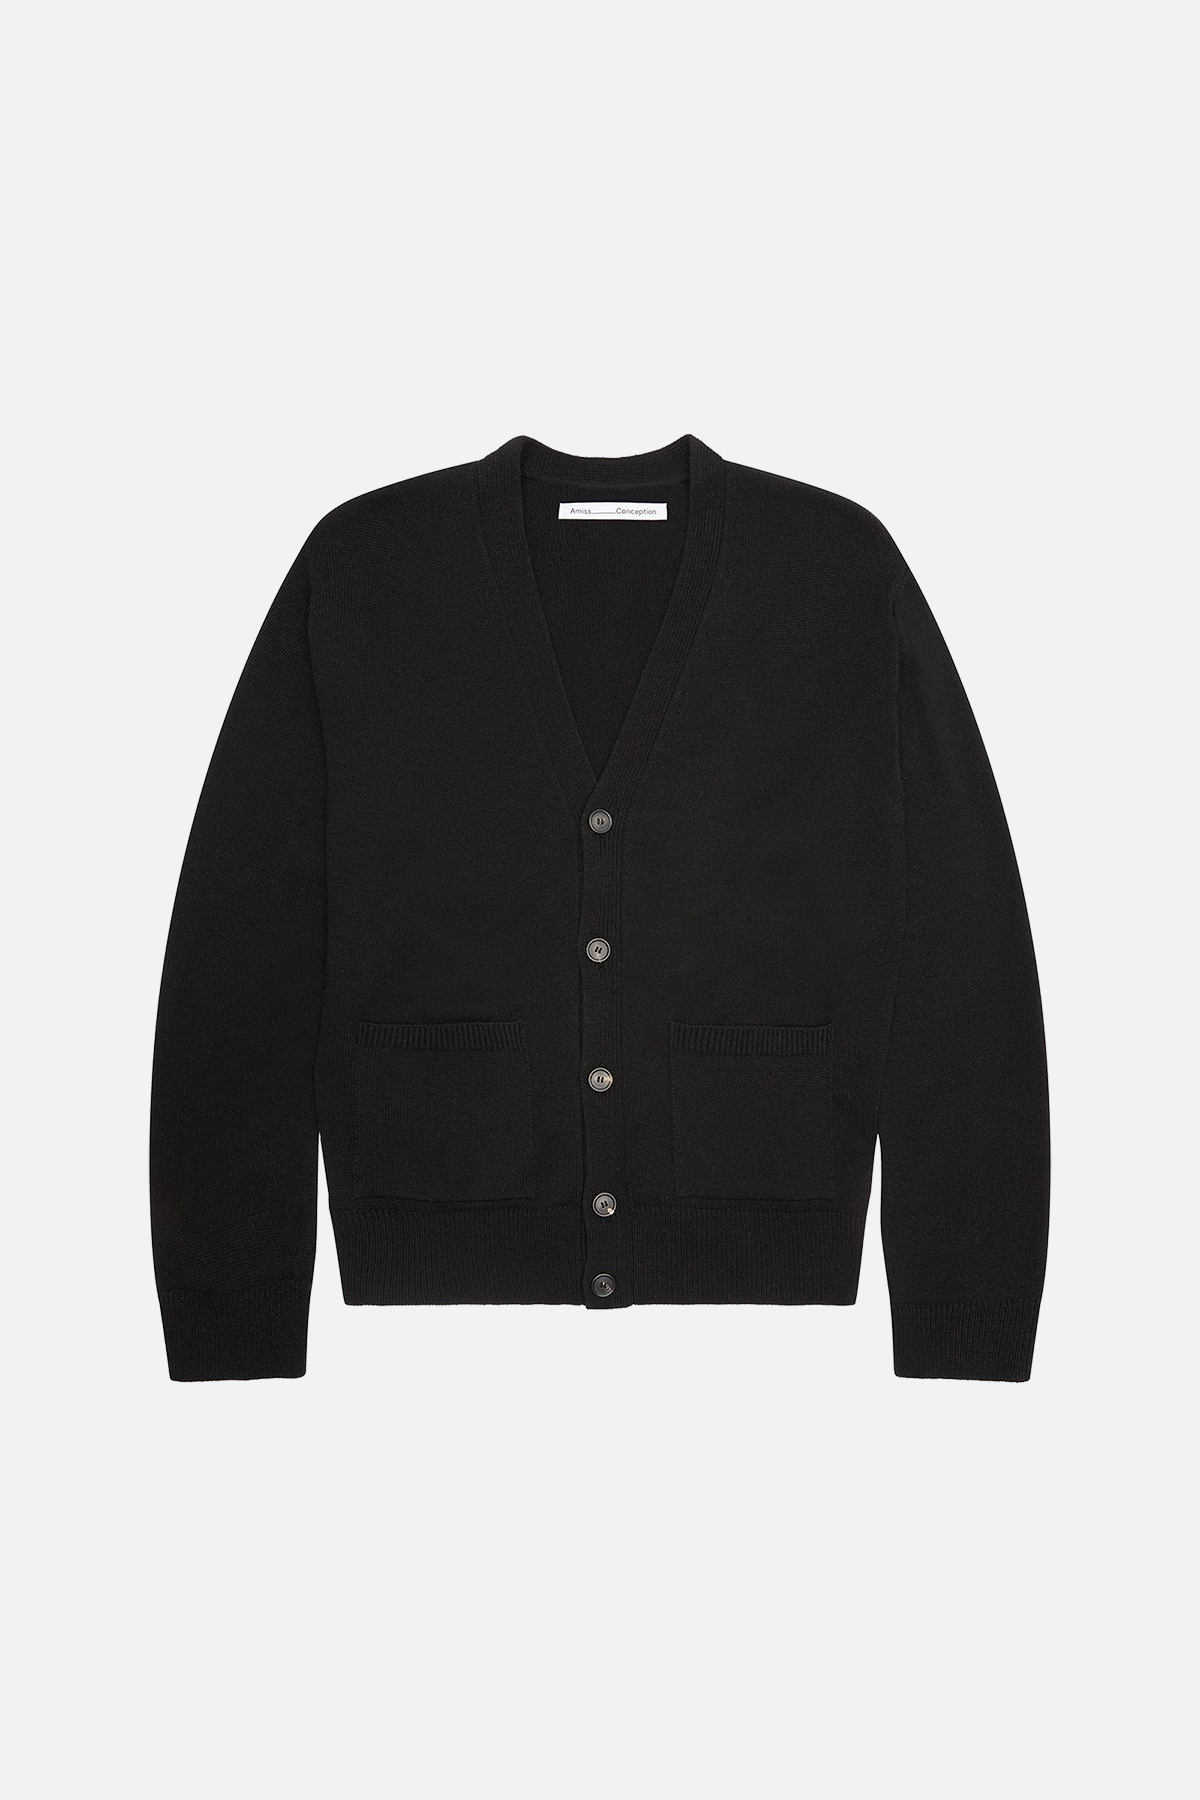 The Cardigan in Licorice